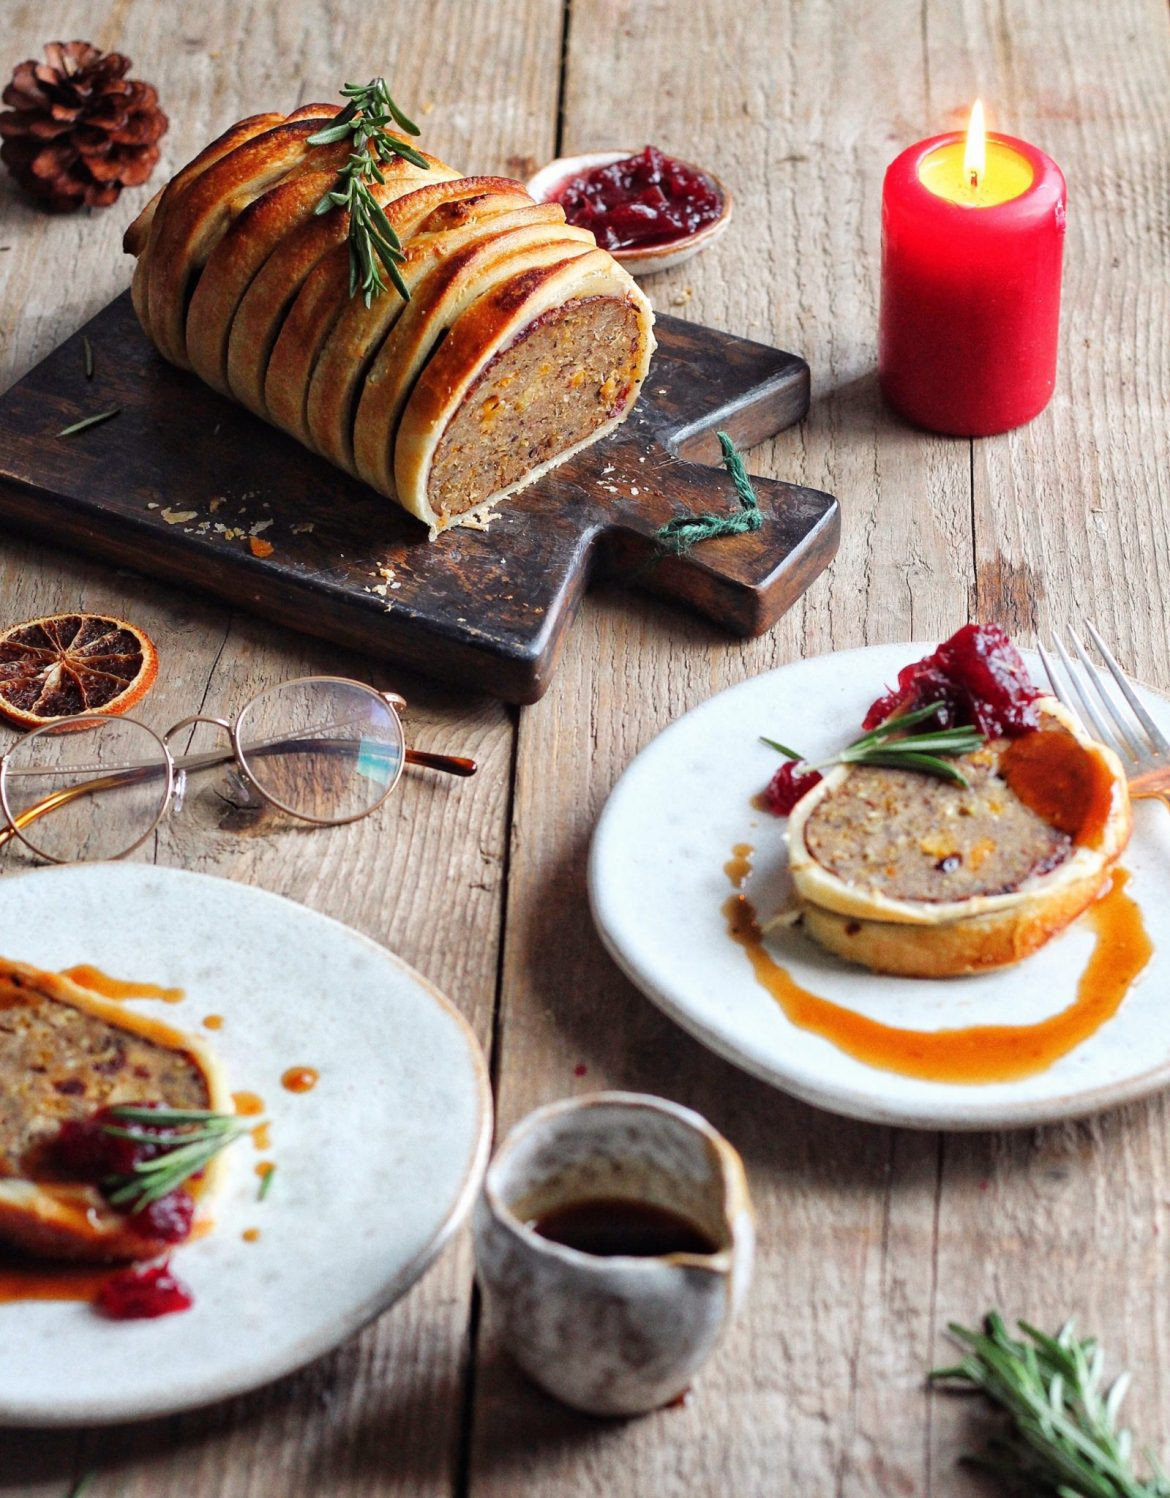 Vegetarian Holiday Main Dishes  22 Delicious Vegan Festive Holiday Side & Main Dishes My